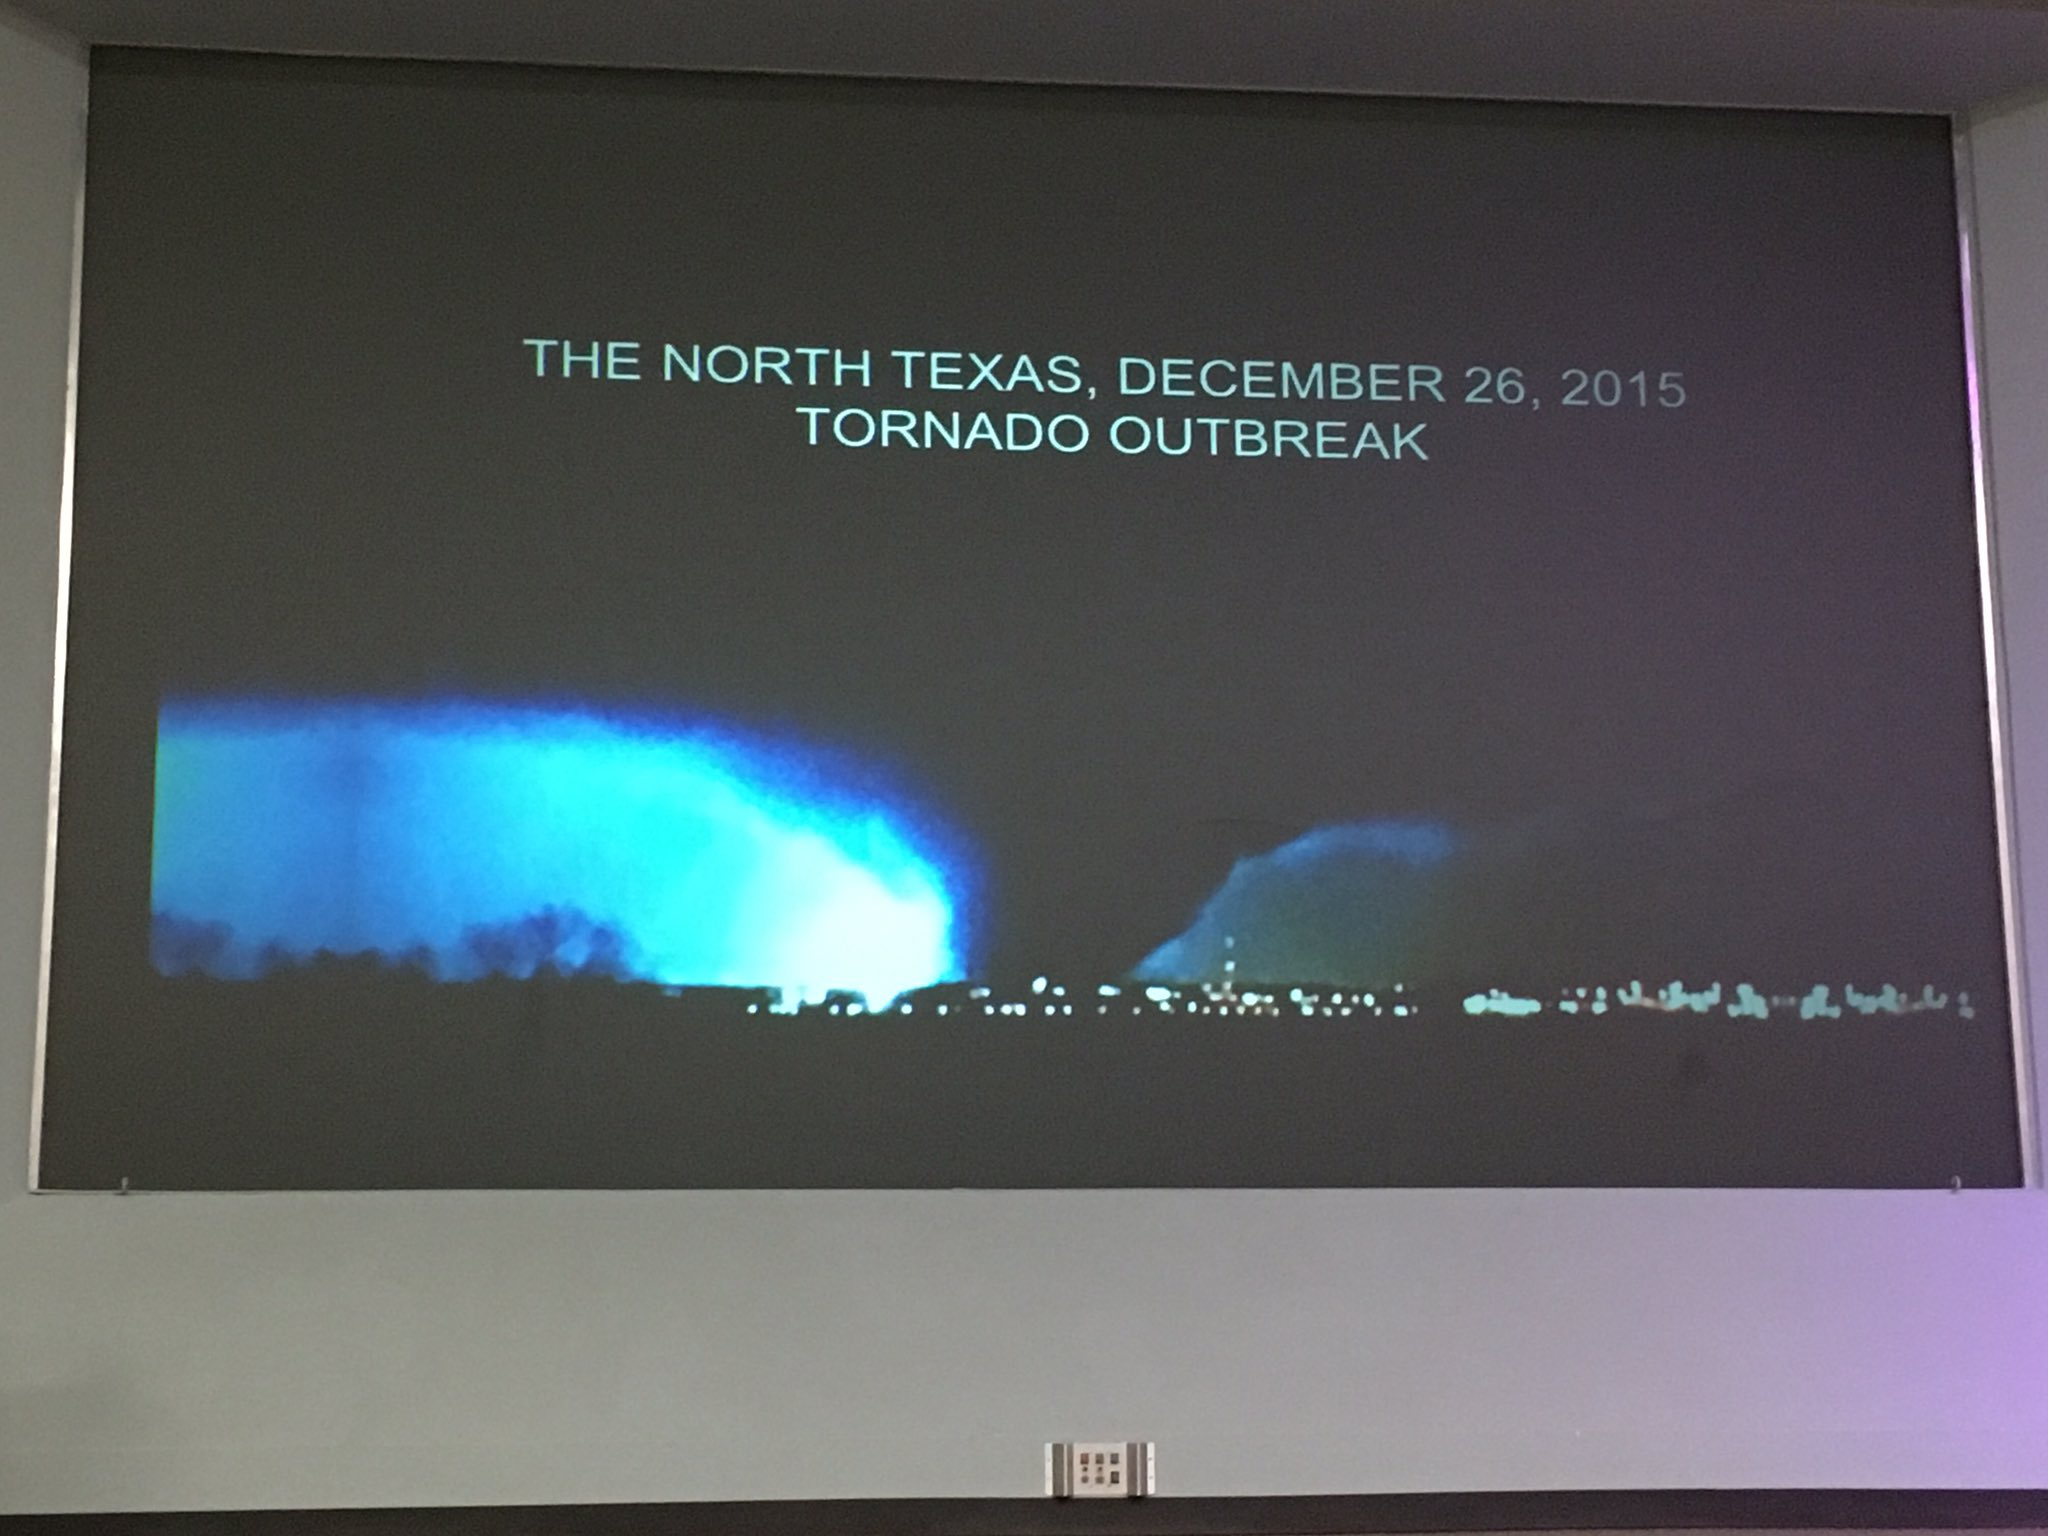 Looking forward to the first talk this morning at #TXWX2017 https://t.co/OIVgEVnrt6